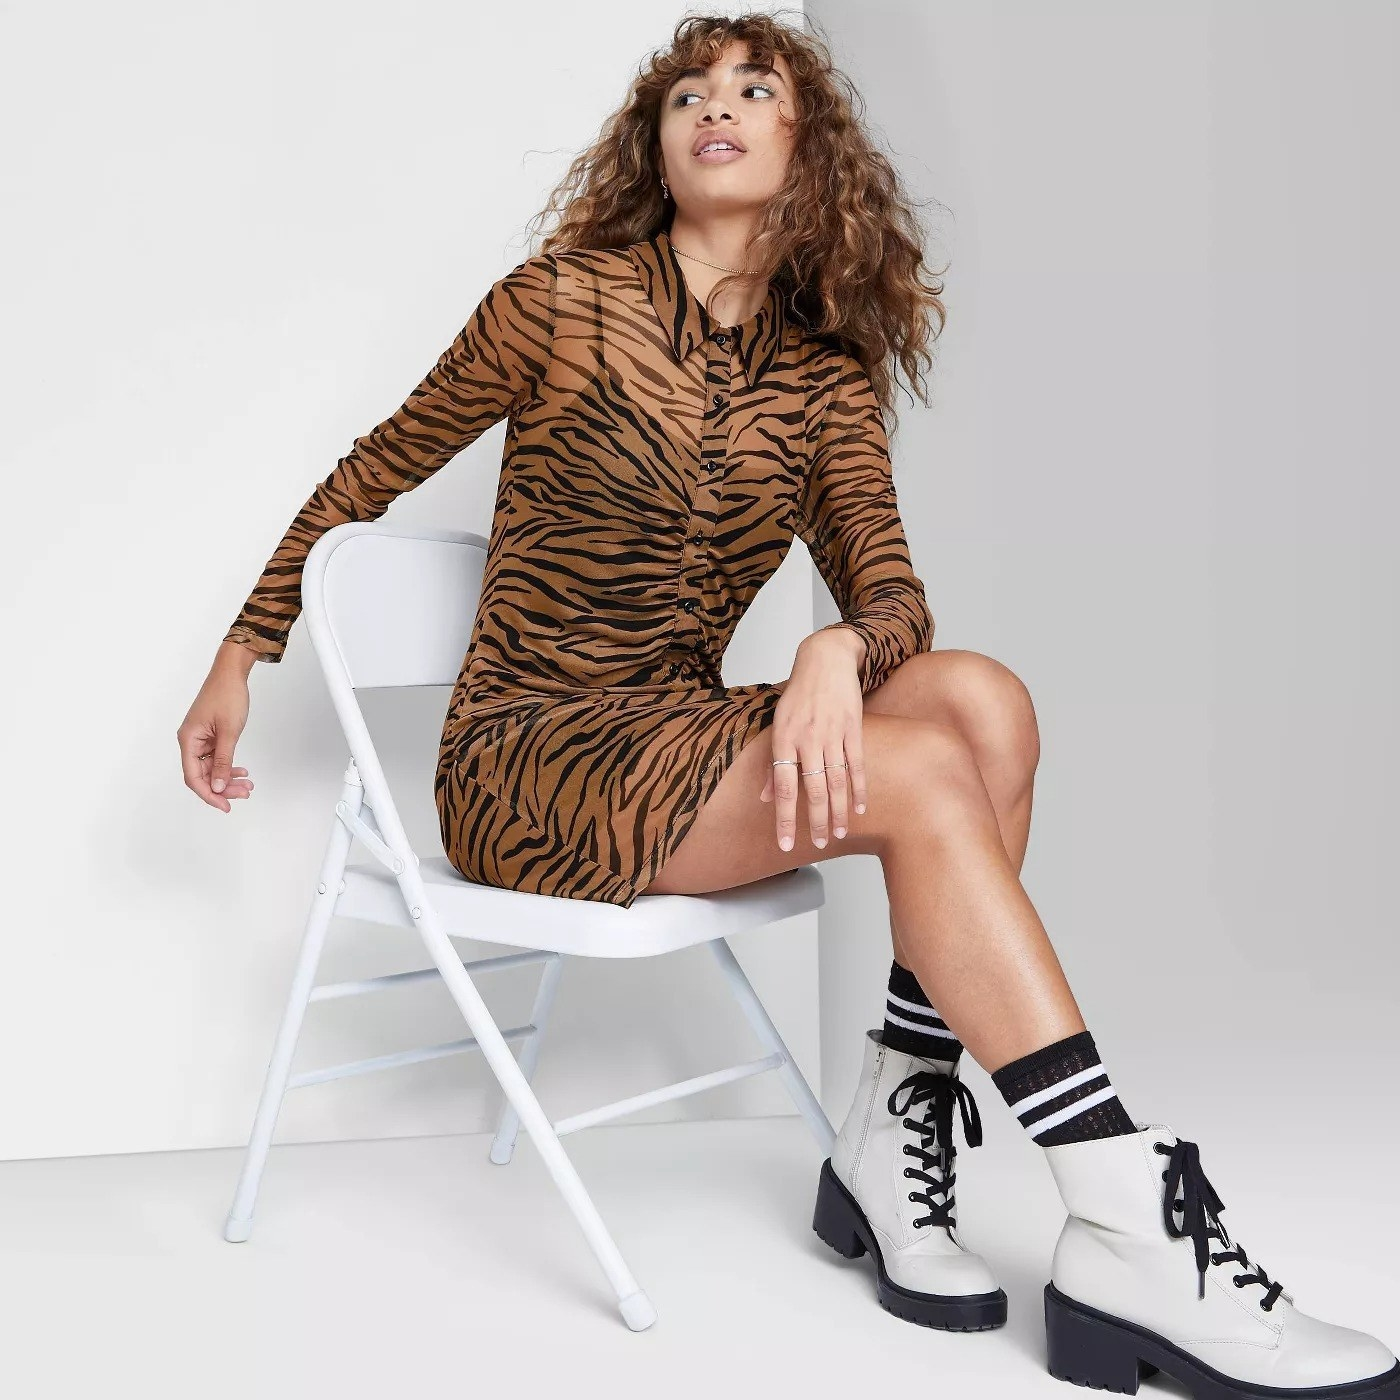 Model wearing brown and black tiger print shirt dress, stops pasts the thigh